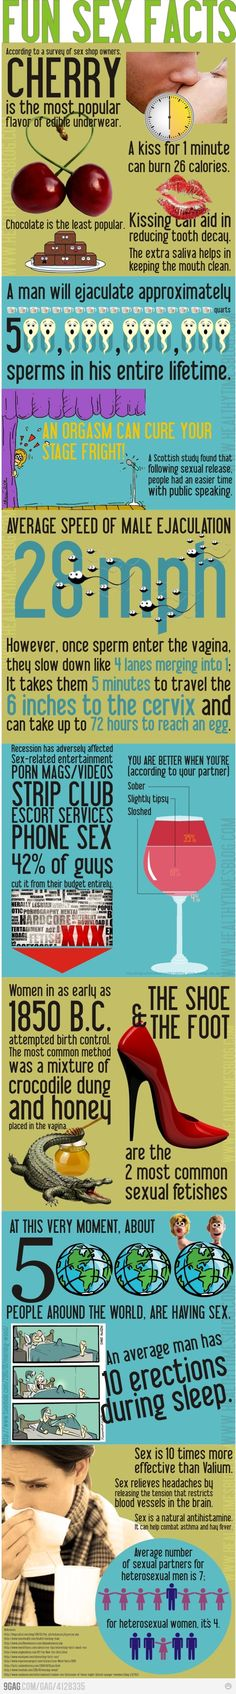 Fun sex facts! Not sure where to pin this but I thought some of it was actually interesting.